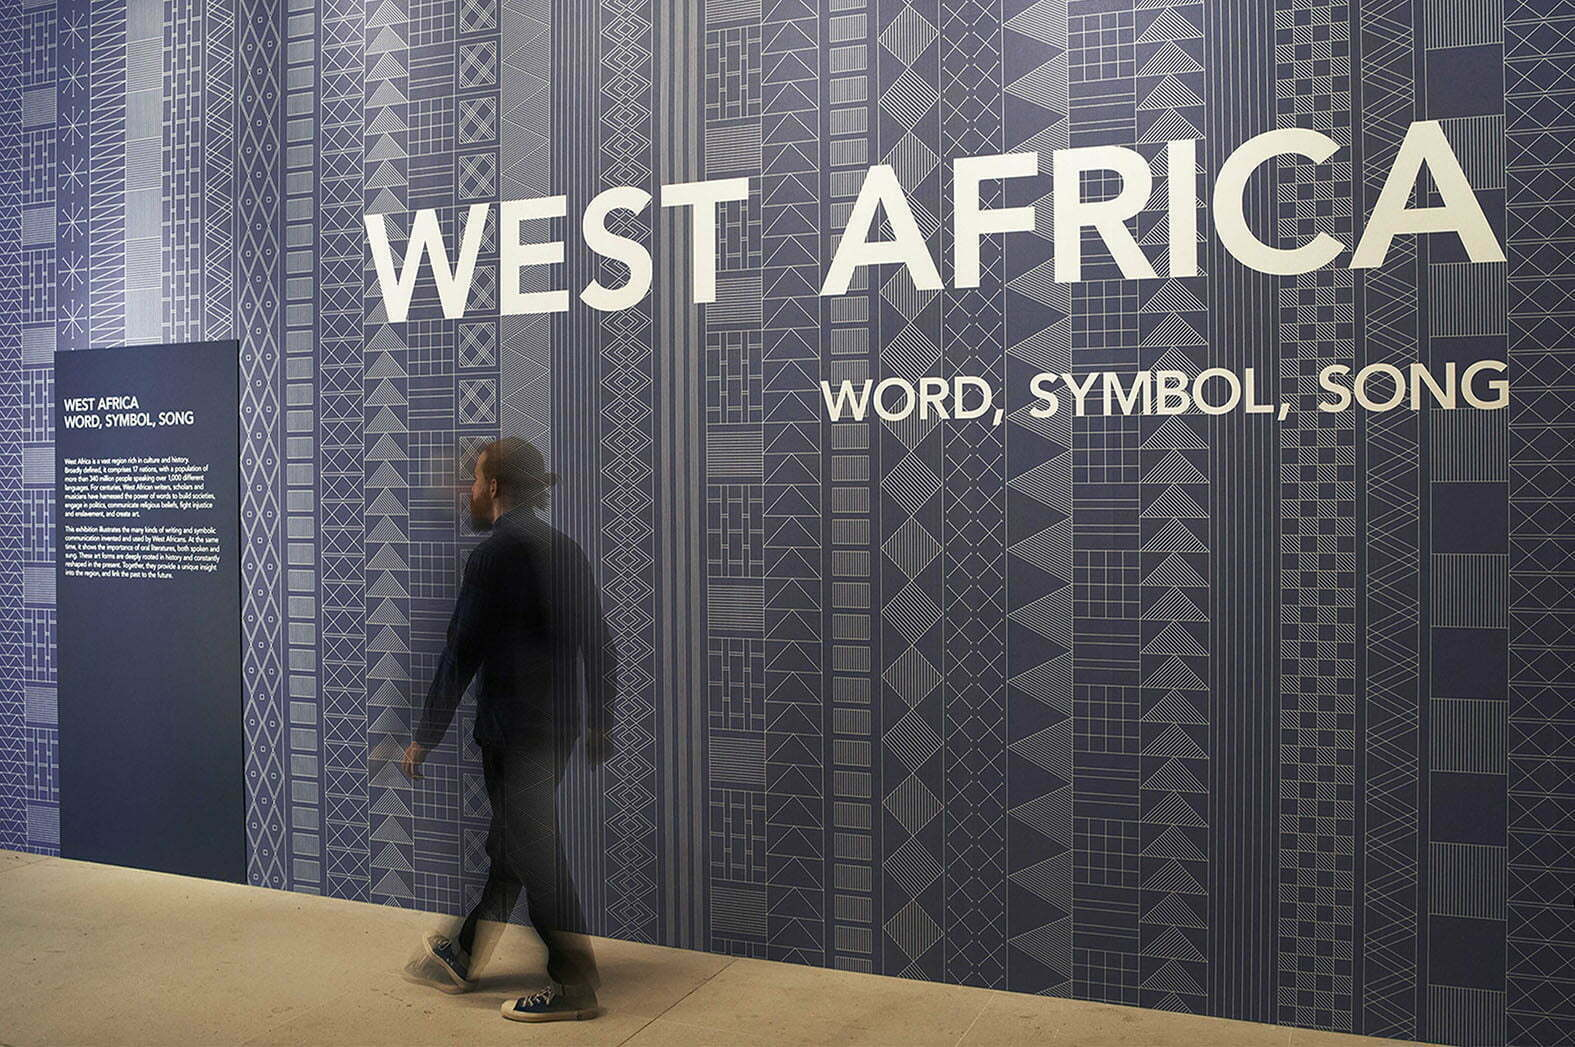 01_Lombaert_Studio_British_Library_West_Africa_07